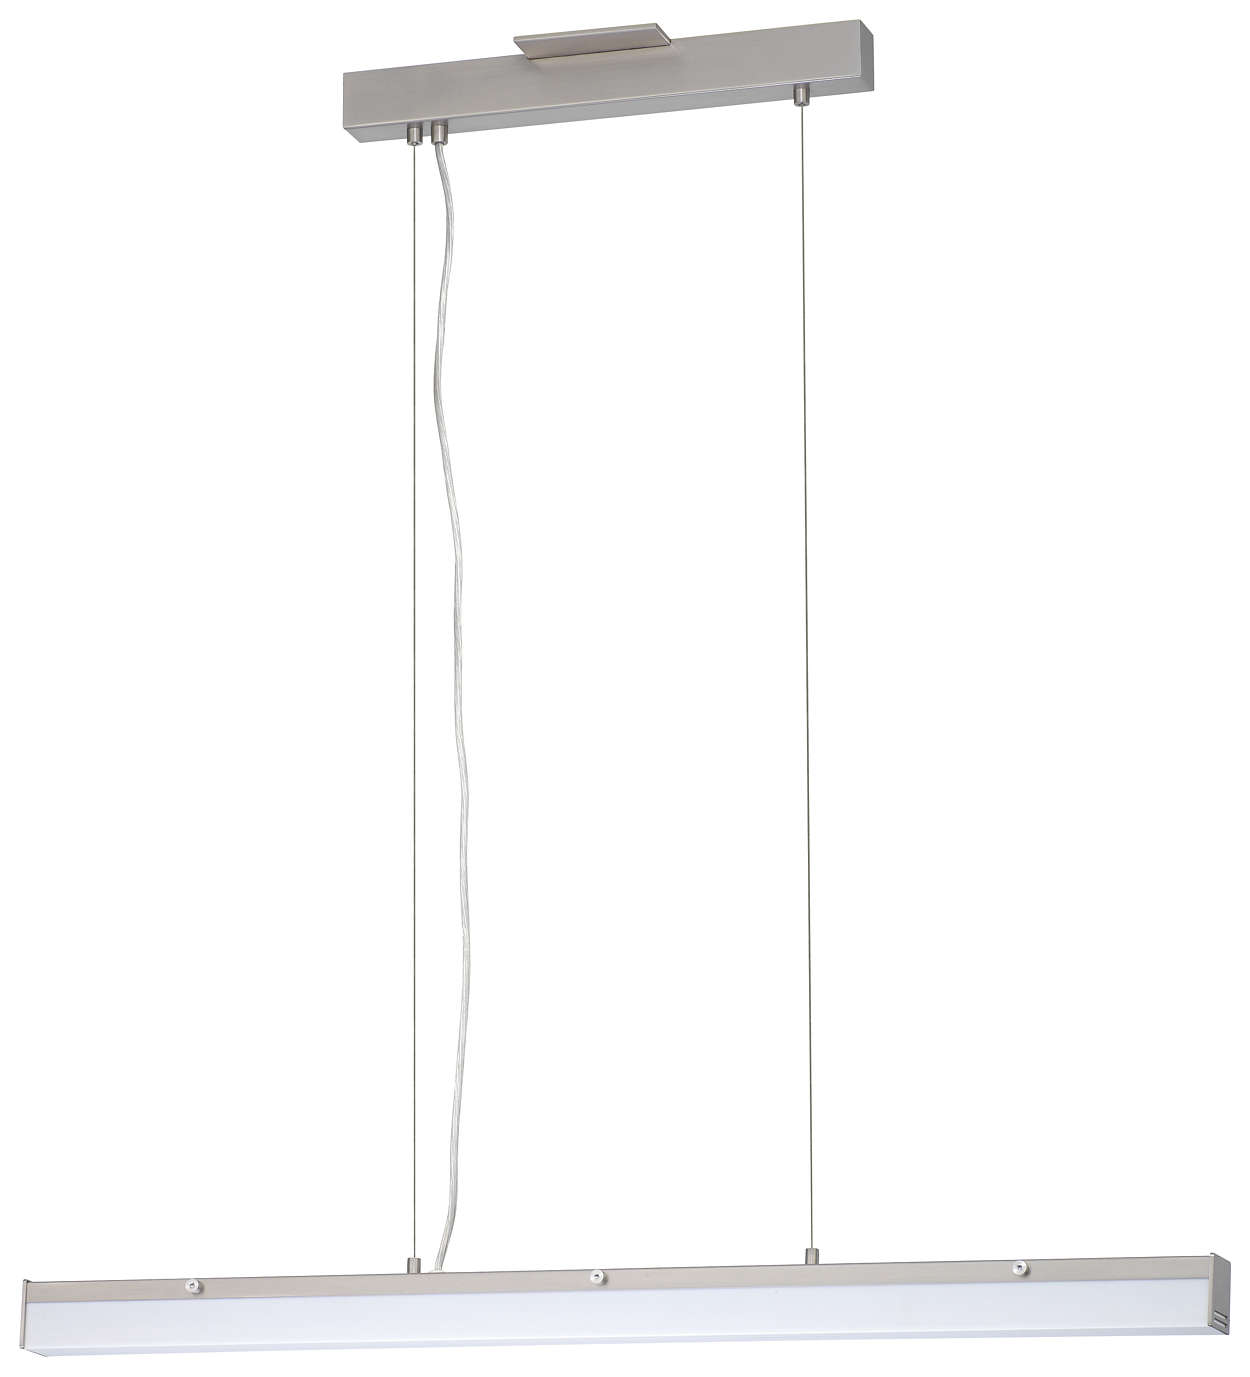 Axo 1-light Pendant in Satin Nickel finish